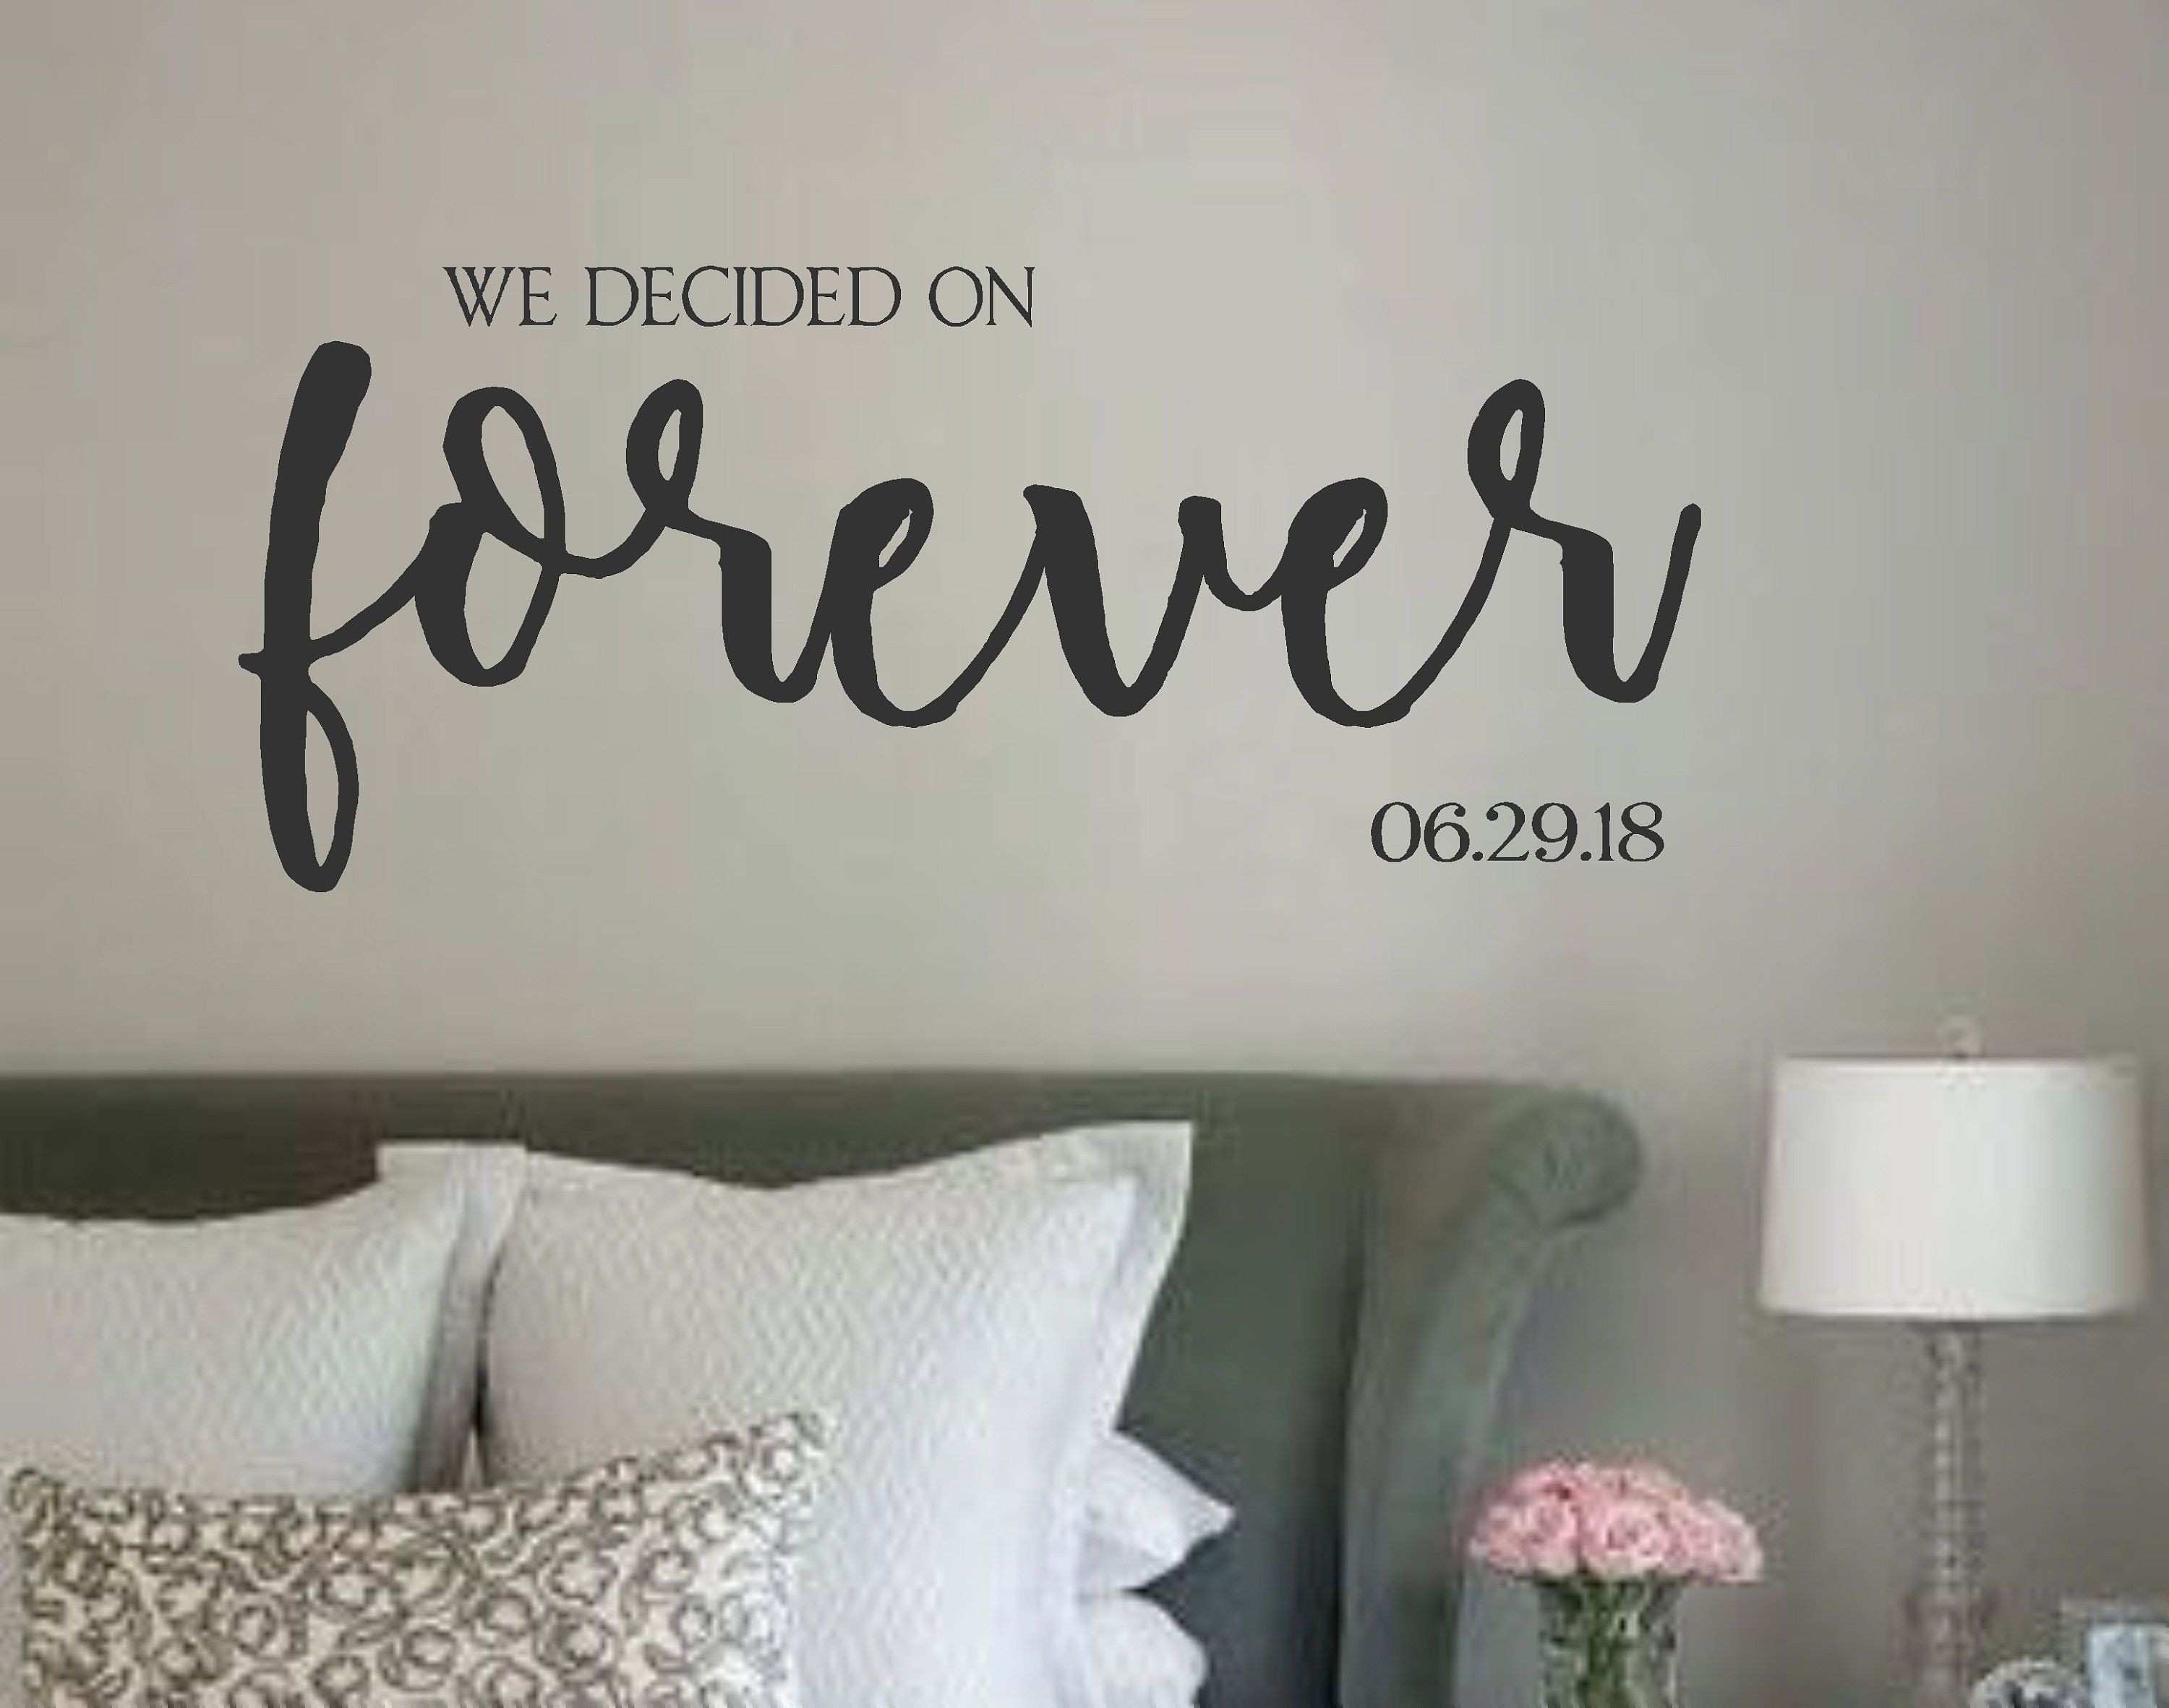 We Decided Forever with Date Vinyl Wall Decal Vinyl Wall Quotes